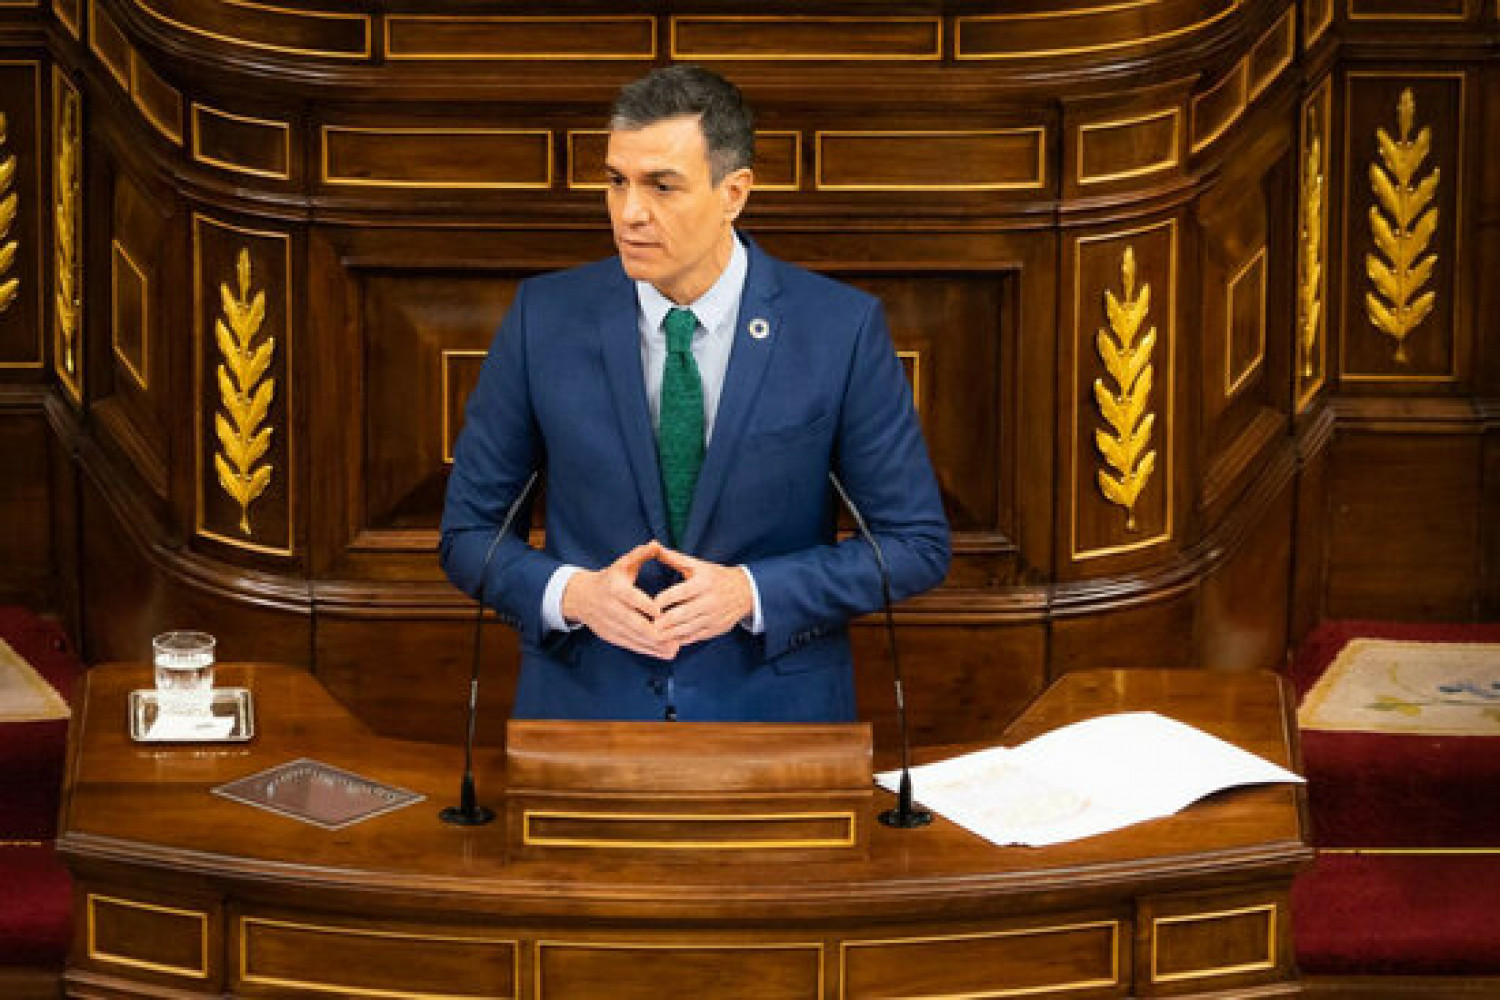 Spanish president Pedro Sánchez speaking in the Spanish congress (image by Spanish congress)